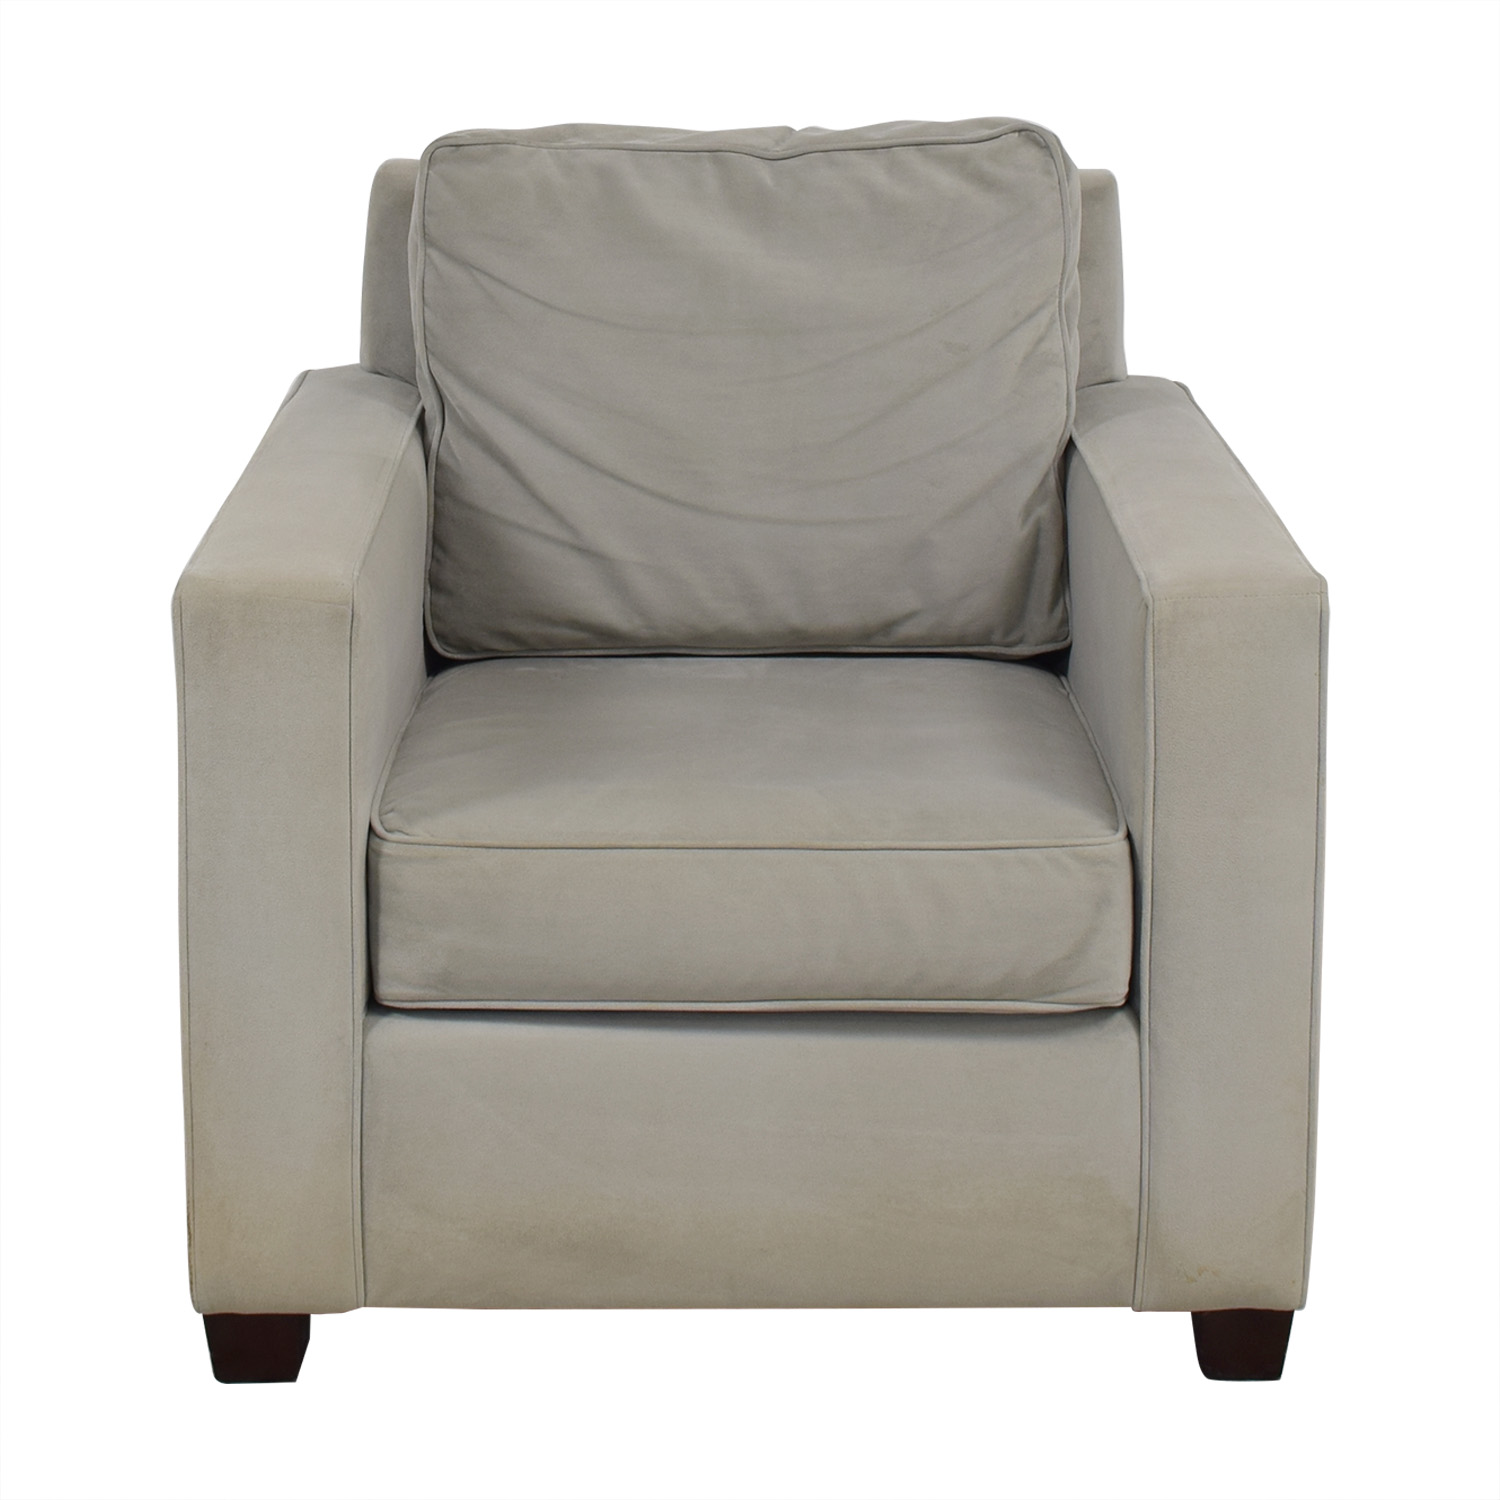 West Elm West Elm Henry Armchair grey